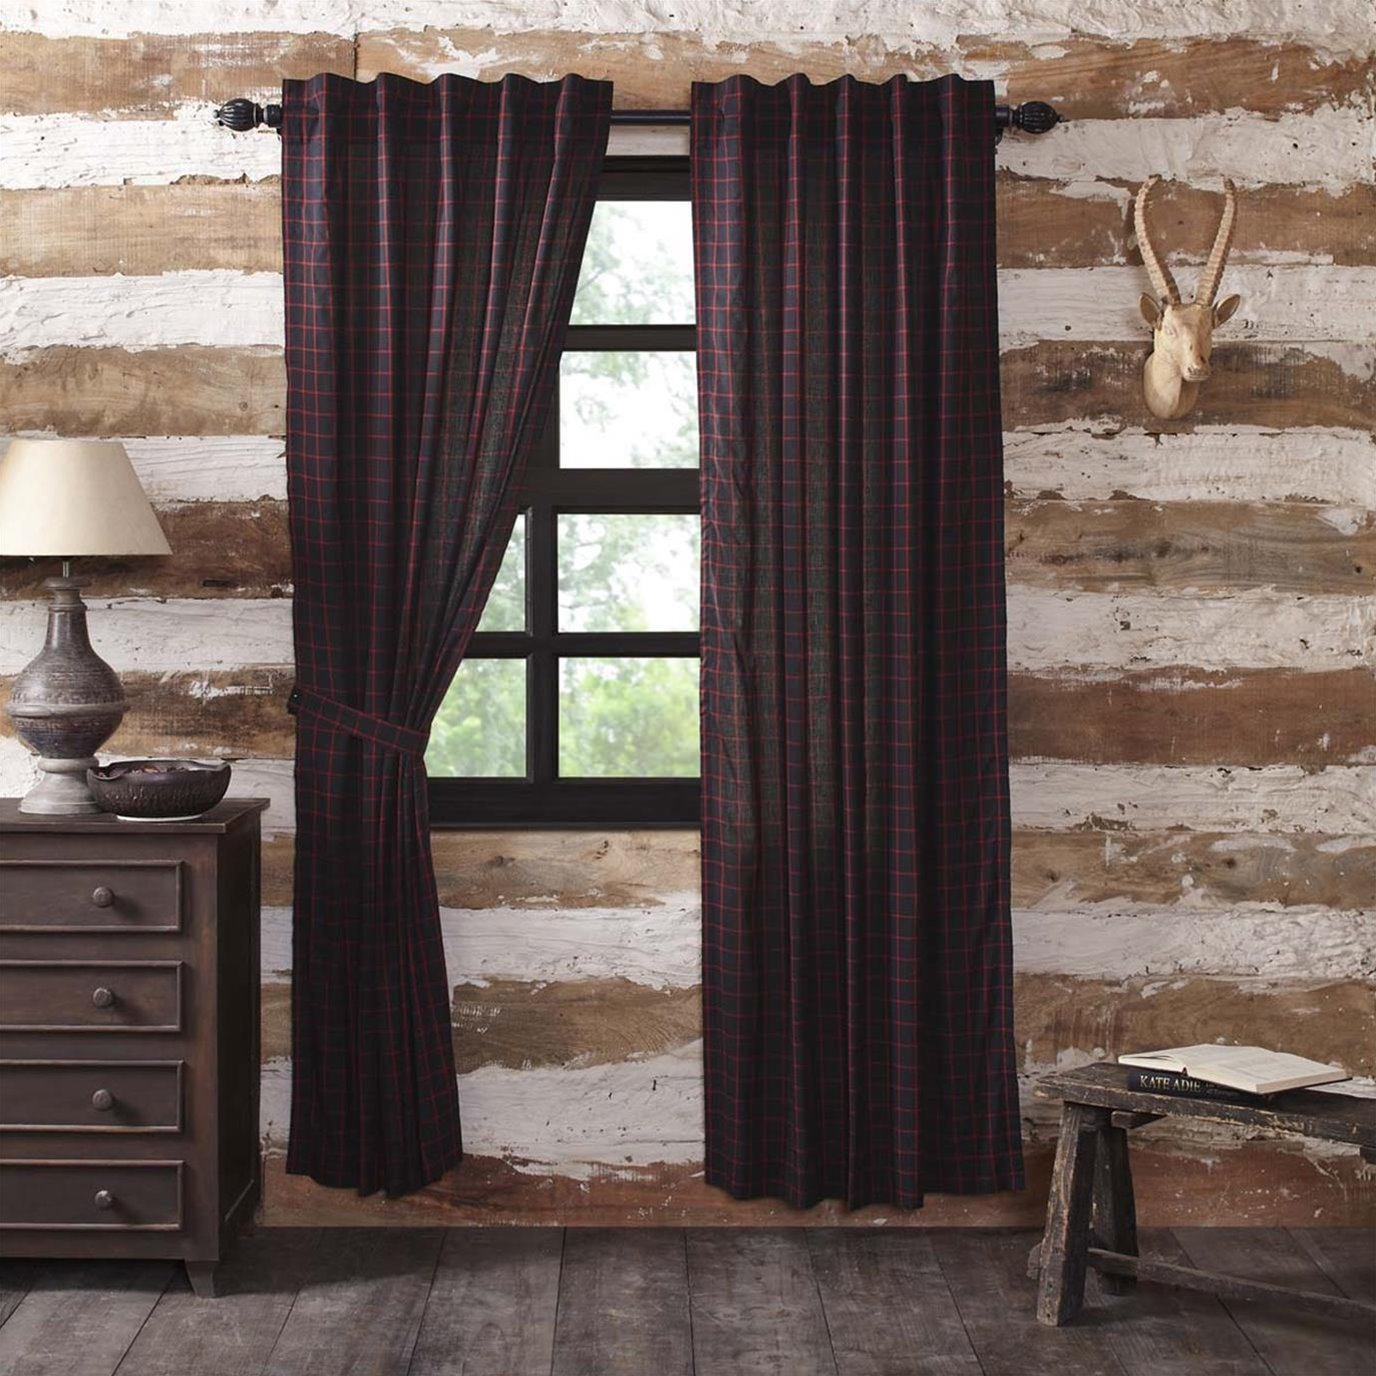 Glennock Plaid Panel Set of 2 84x40